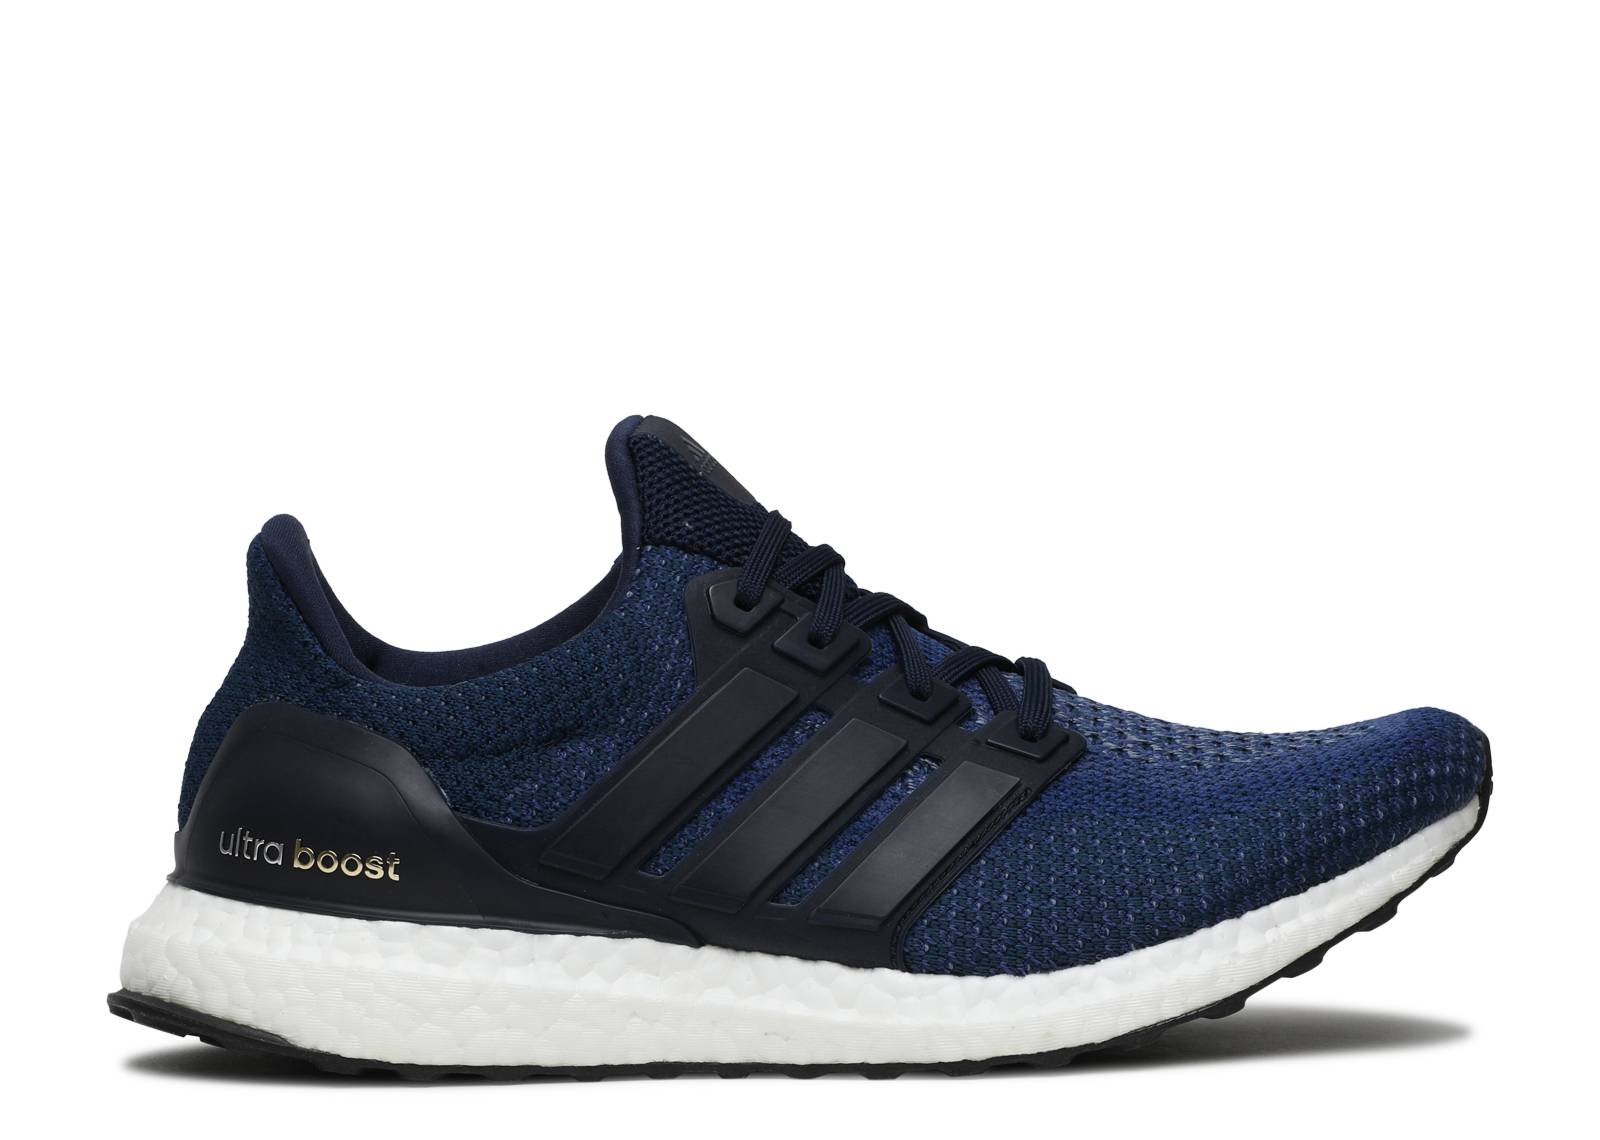 ... ultra boost m adidas aq5928 collegiate navy collegiate navy night navy  flight club